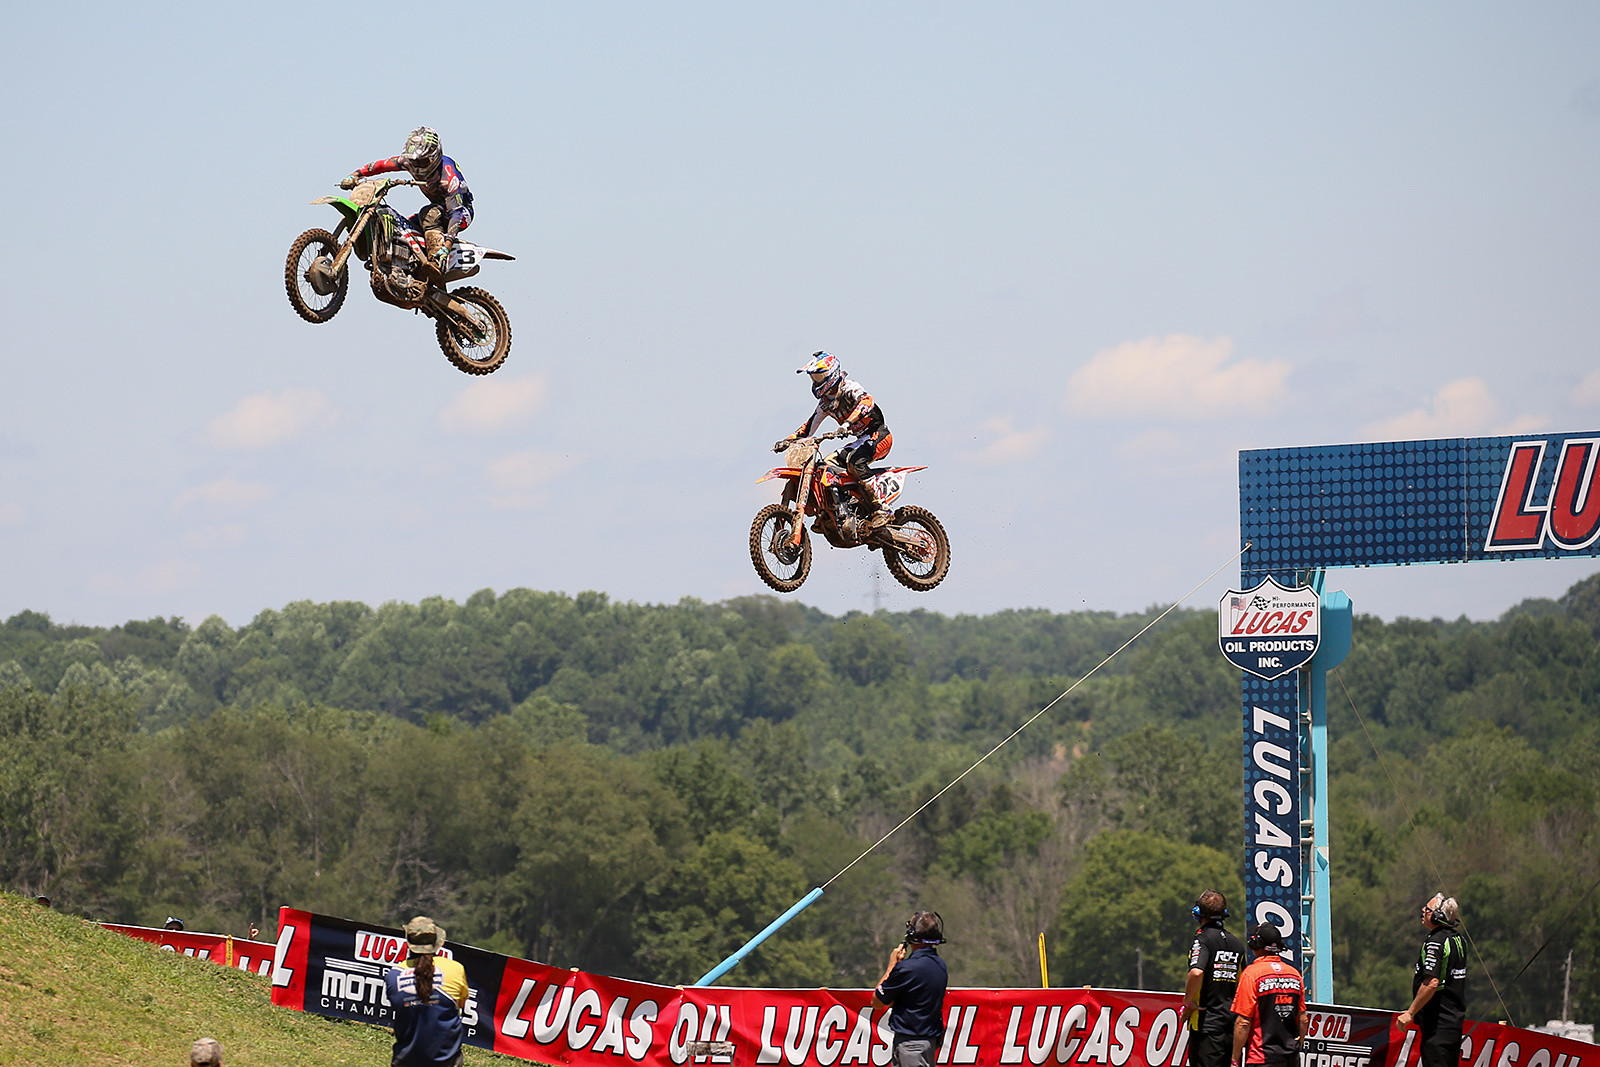 After Marvin led for a couple laps, Eli Tomac took over the top spot. After making the pass, he went for a quick boot adjustment over the newly-configured LaRocco's Leap.